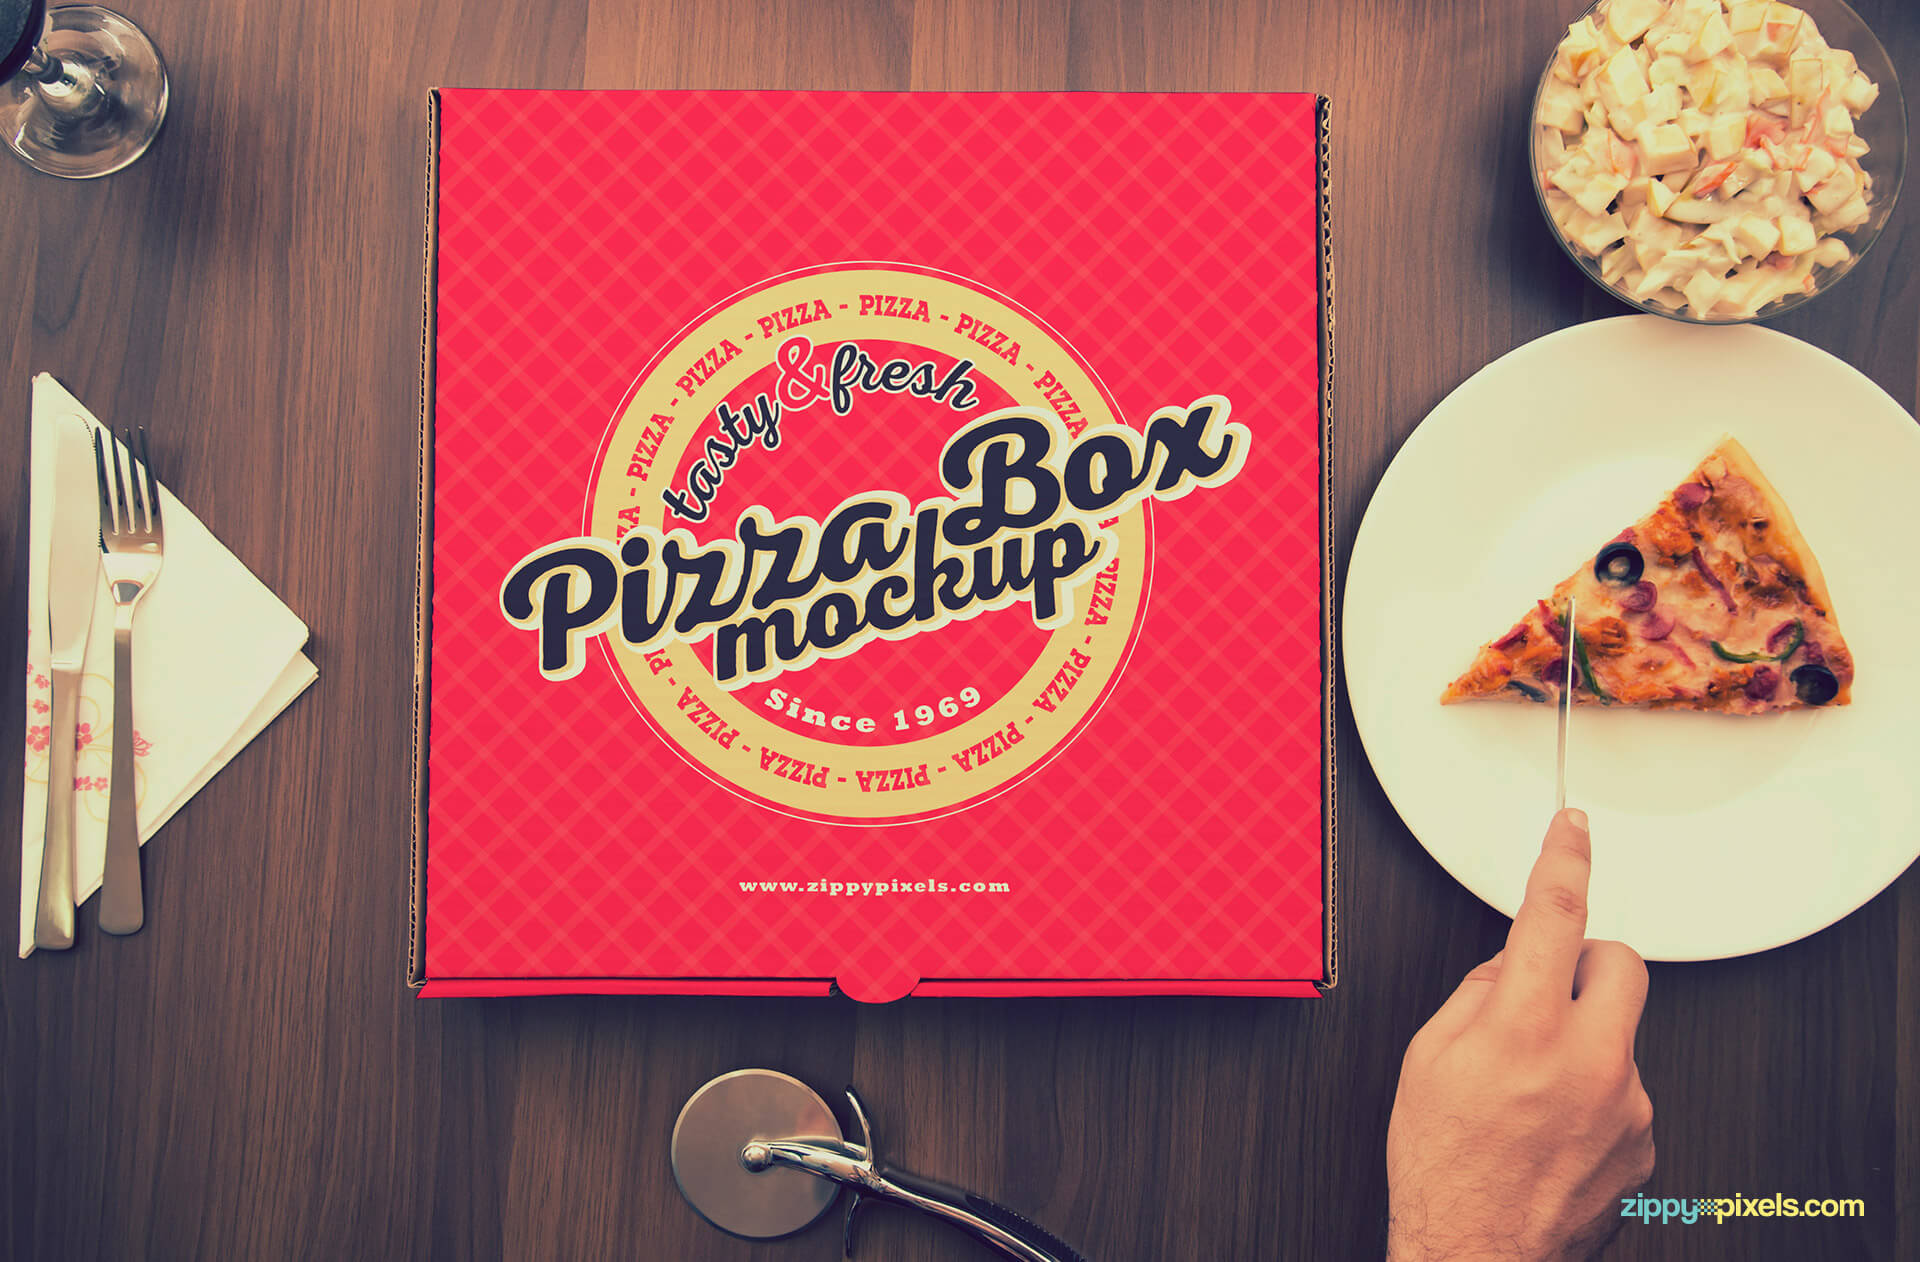 Red pizza box design.